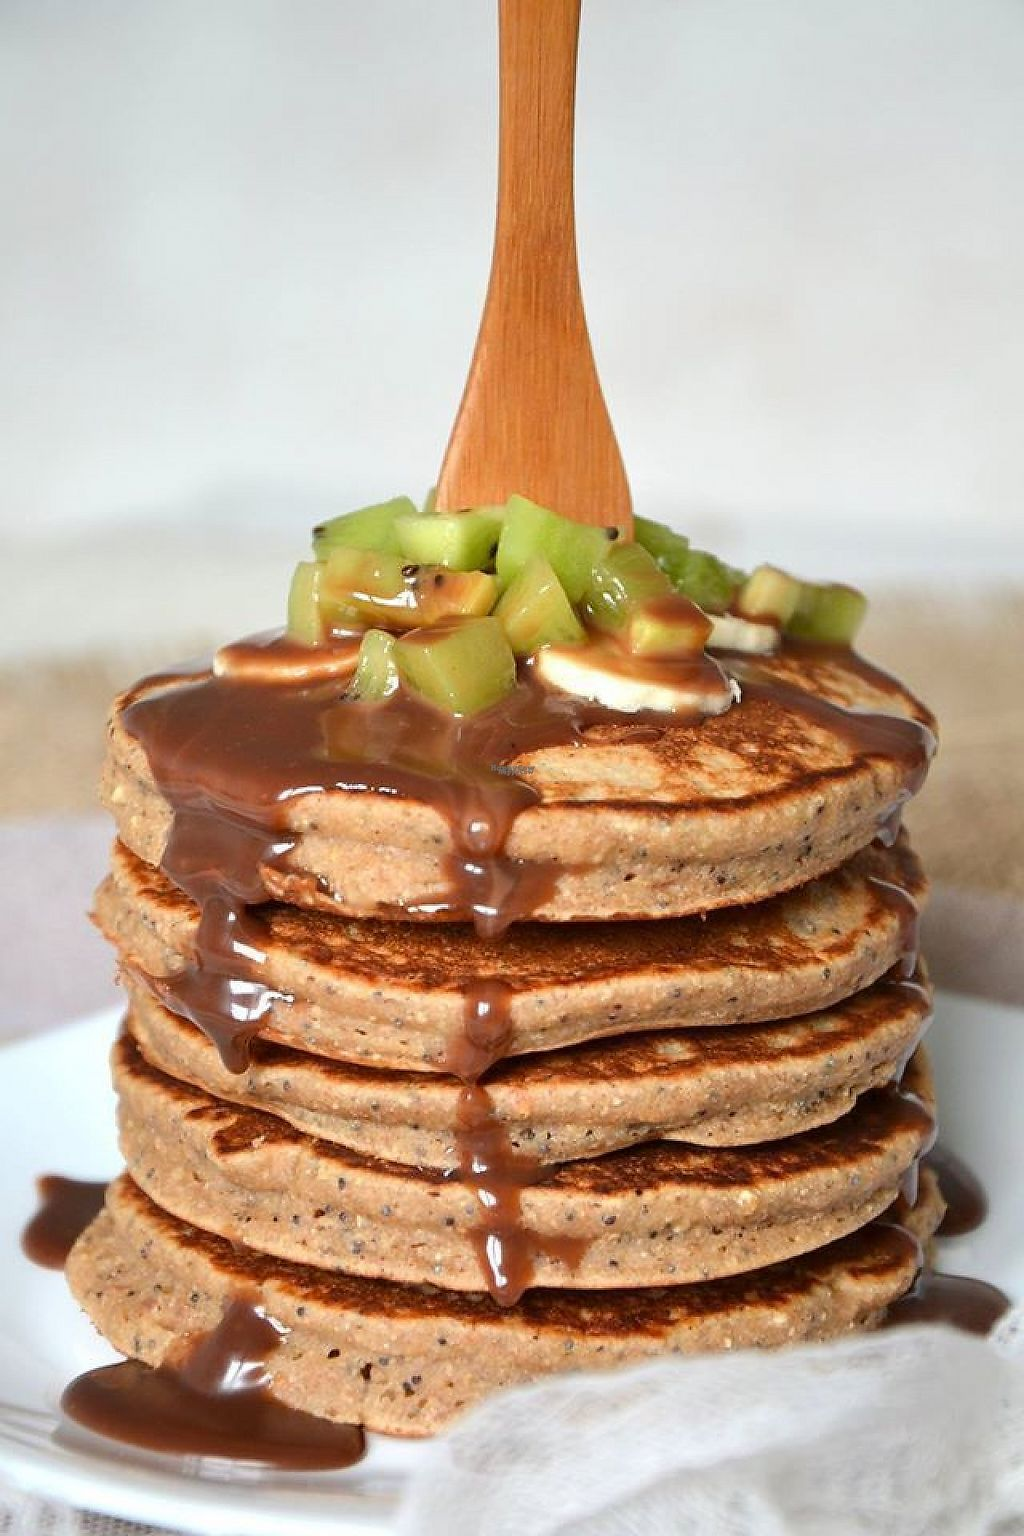 """Photo of La Vie Claire  by <a href=""""/members/profile/community"""">community</a> <br/>vegan pancakes  <br/> February 4, 2017  - <a href='/contact/abuse/image/72013/221859'>Report</a>"""